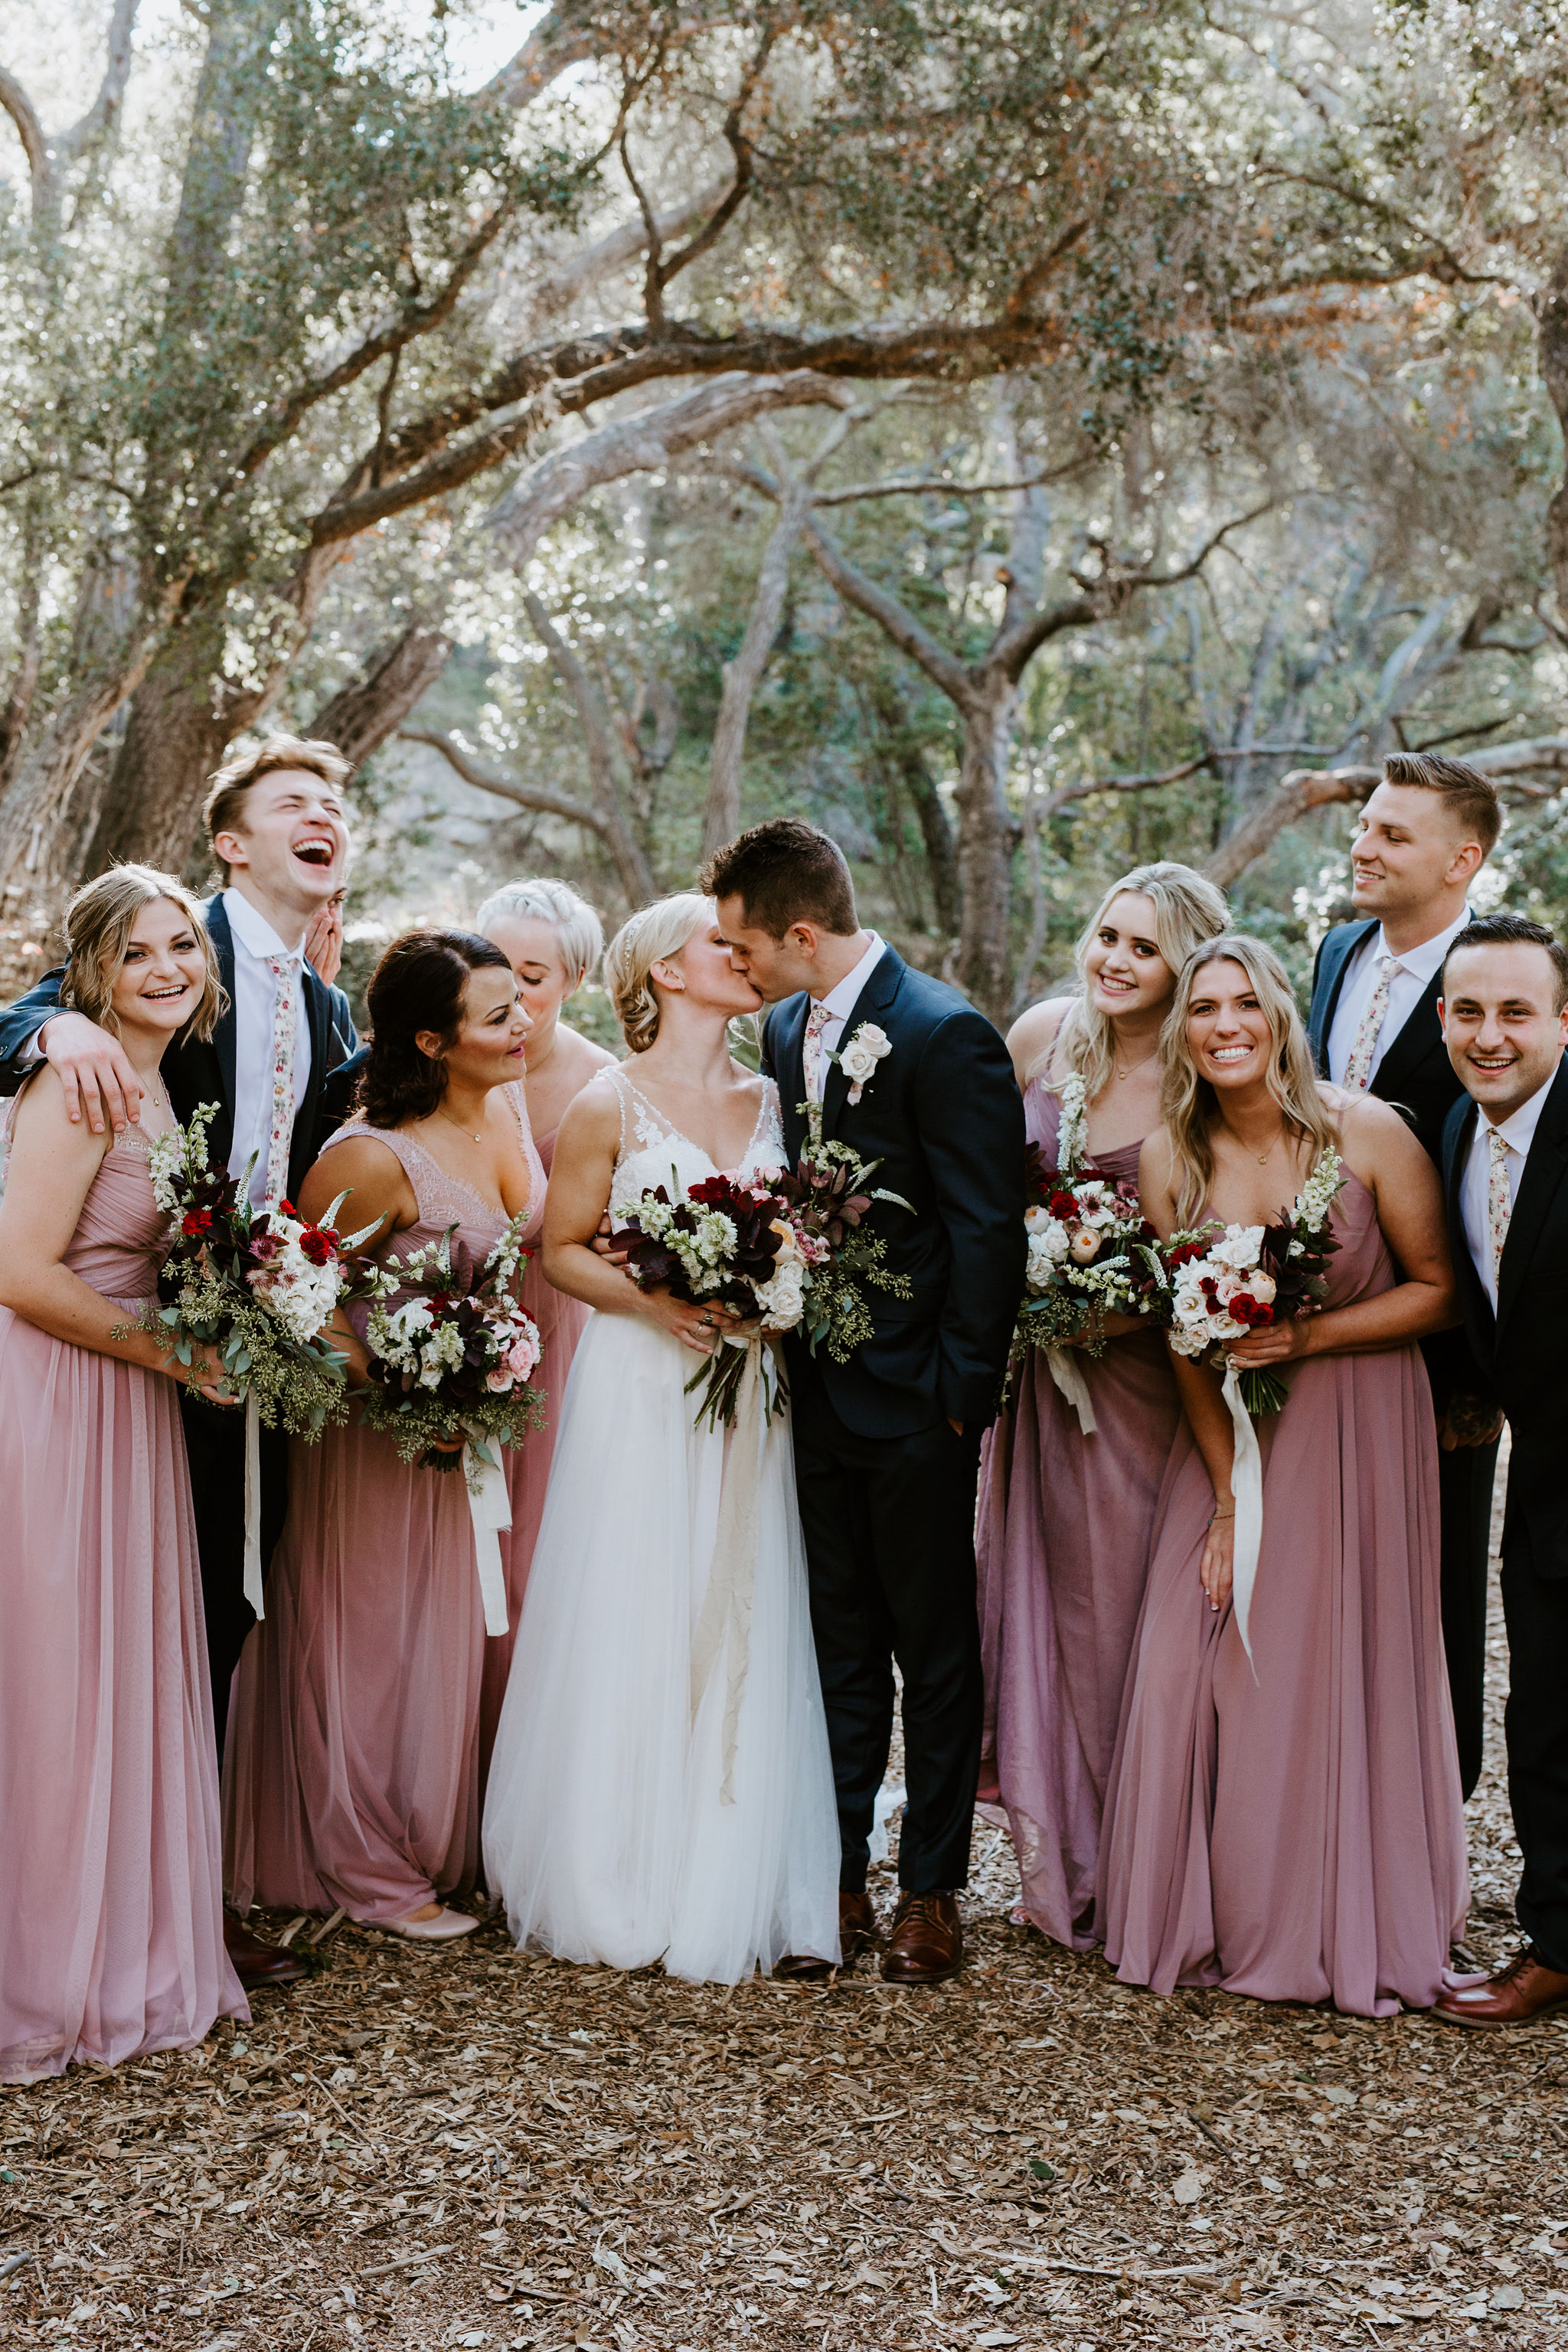 www.santabarbarawedding.com | Geoff and Lyndsi Photography | Santa Barbara Museum of Natural History | Jamie Mangone of LuJane Events | Topa Flora | Bridal Party